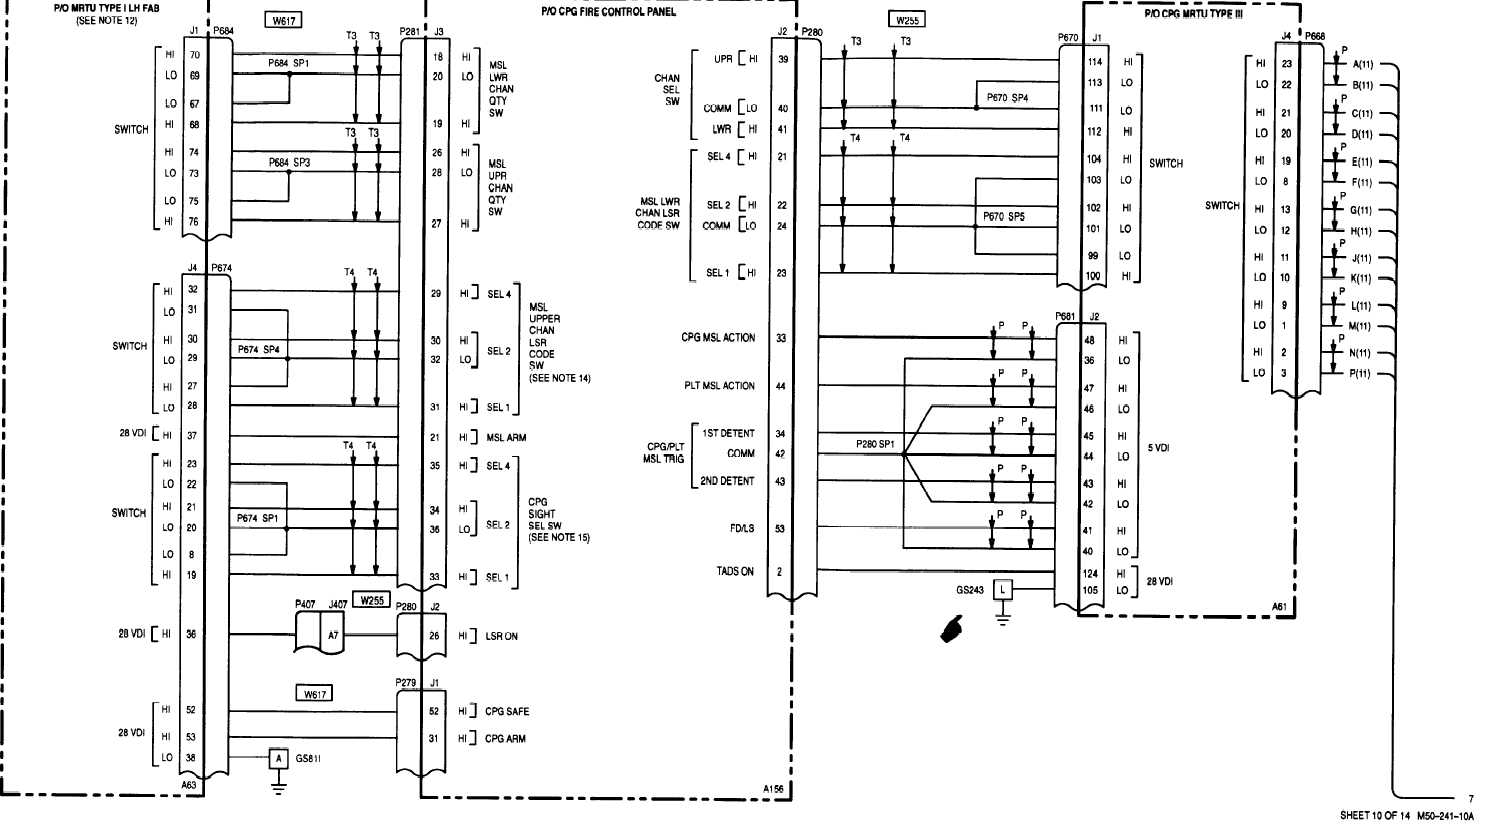 smart car stereo wiring diagram with Aam Wiring Diagrams on 1hd Fte Ecu Wiring Diagram also Wiring Diagram For Doorbell further Mercedes C230 Wiring Diagrams further 2008 Saturn Vue Parts Diagram Rocker moreover D8r Bulldozer Wiring Diagrams.